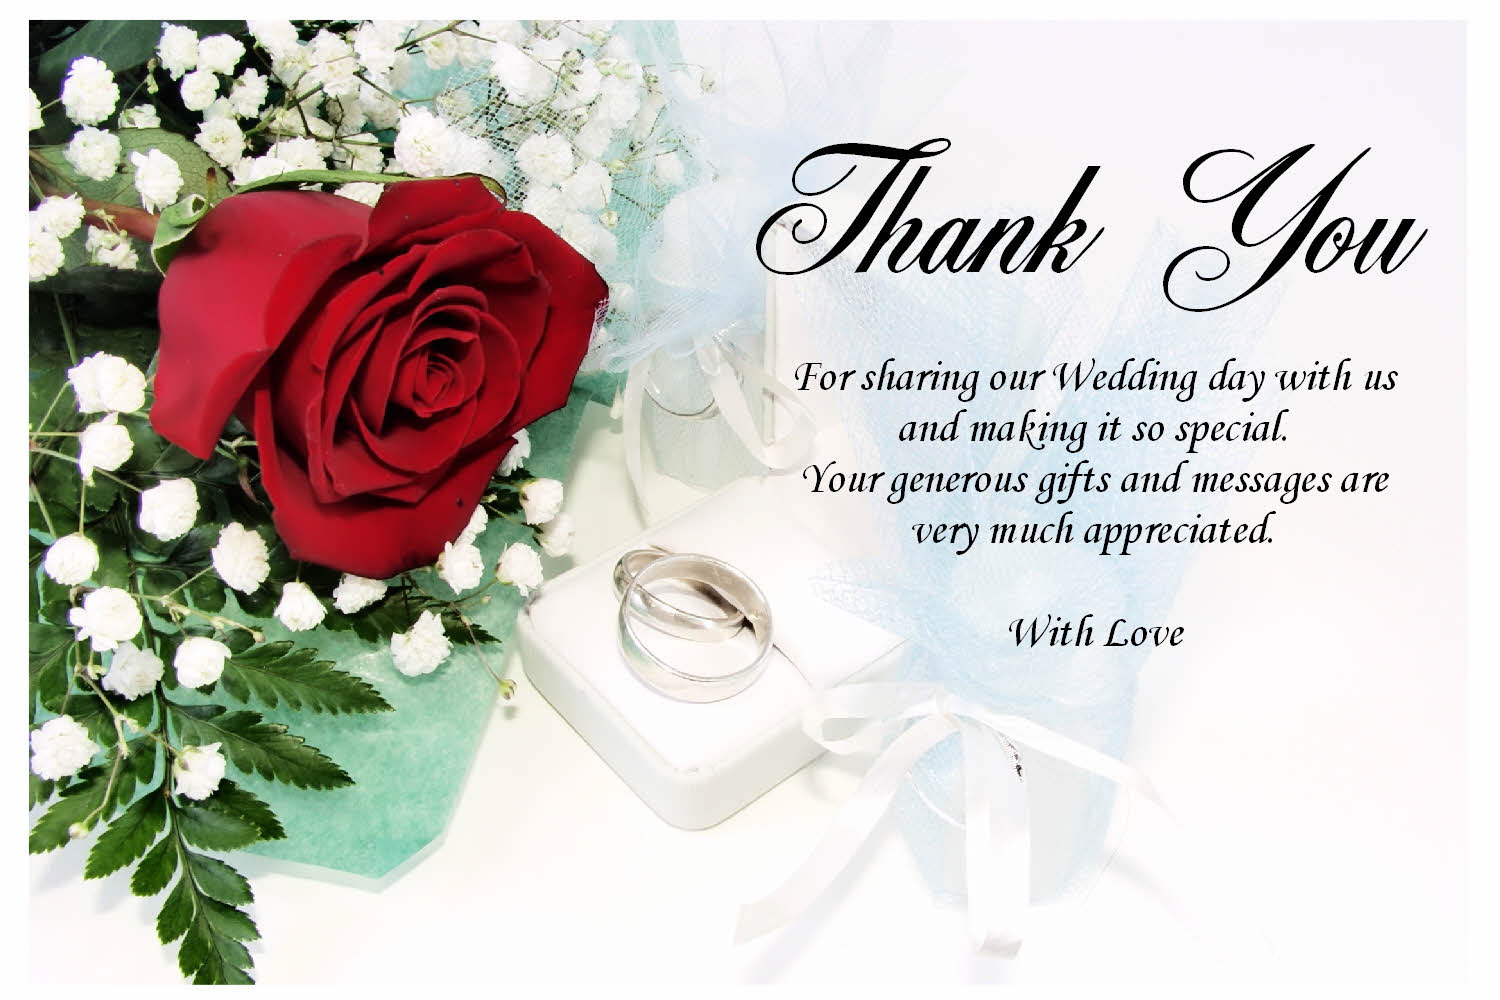 Wedding Gift Ideas For Elder Brother : ... wedding gift cash wedding gifts wedding thank you card wording for a